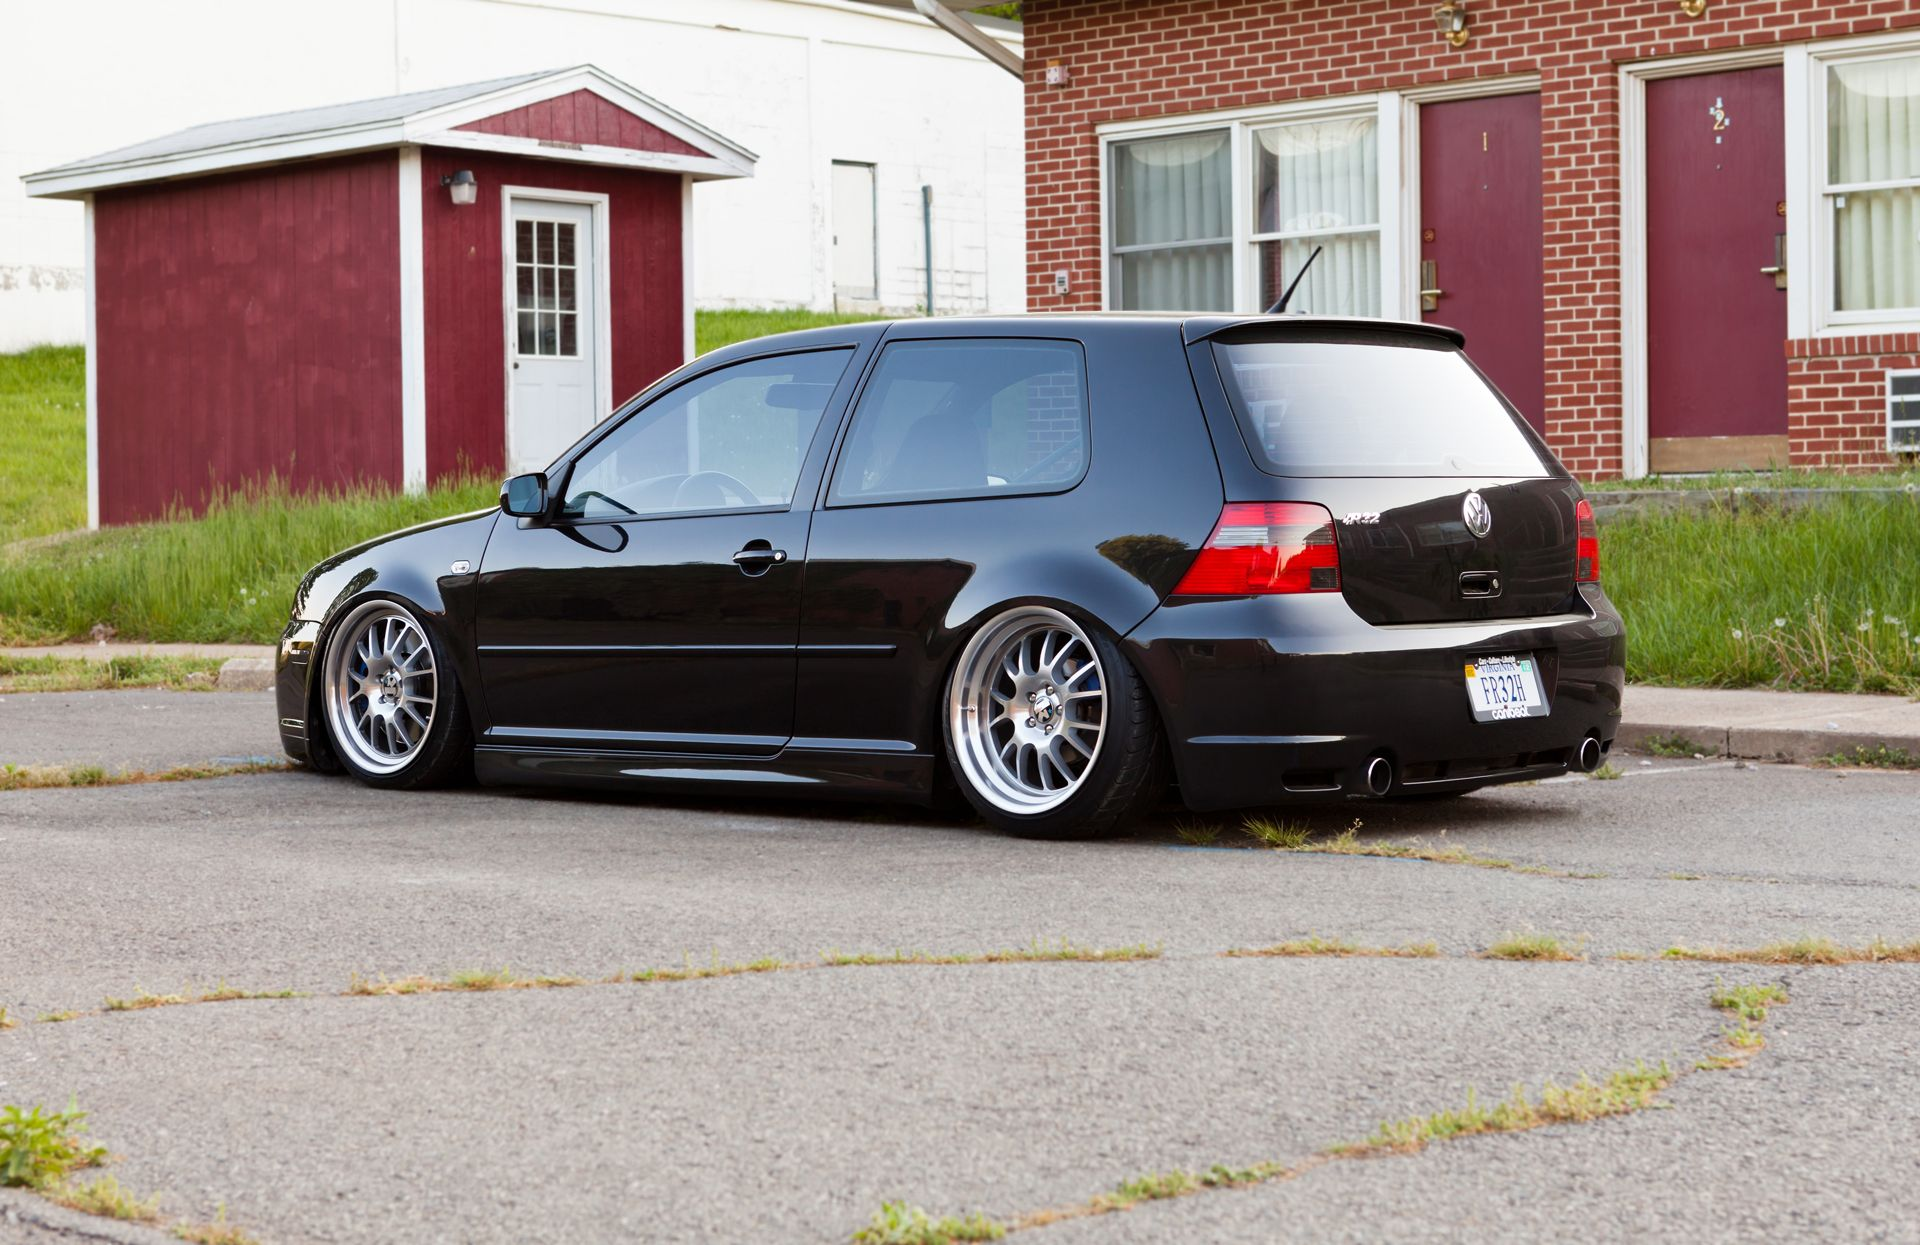 Vw Stance Brown S Car Automotive Group Modified Friday Vw Mk4 Volkswagen Vw Golf